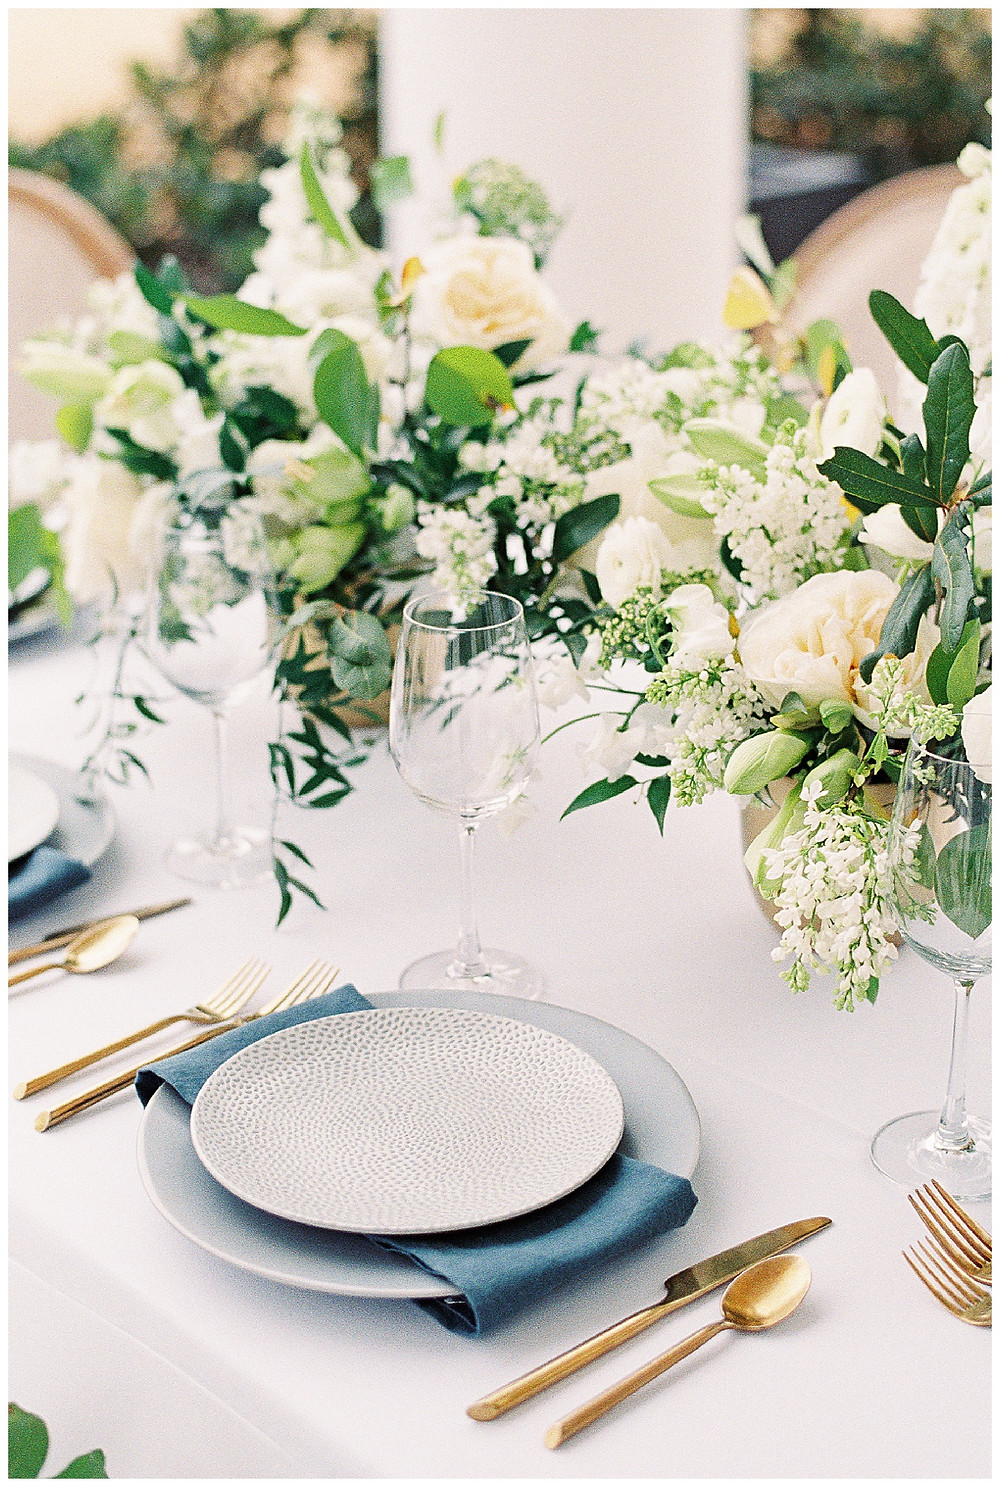 the pearl at sabine creek, blue plates, table set for six,  dallas wedding photography, dallas wedding, spring wedding, texas, floral installation, yellow, white, green, table scape with gold flatware, gold pots, white tablecloth , grey plates with texture, menus with deckled edges, gold silverware, styled flat lay, clear stemware, blue napkin